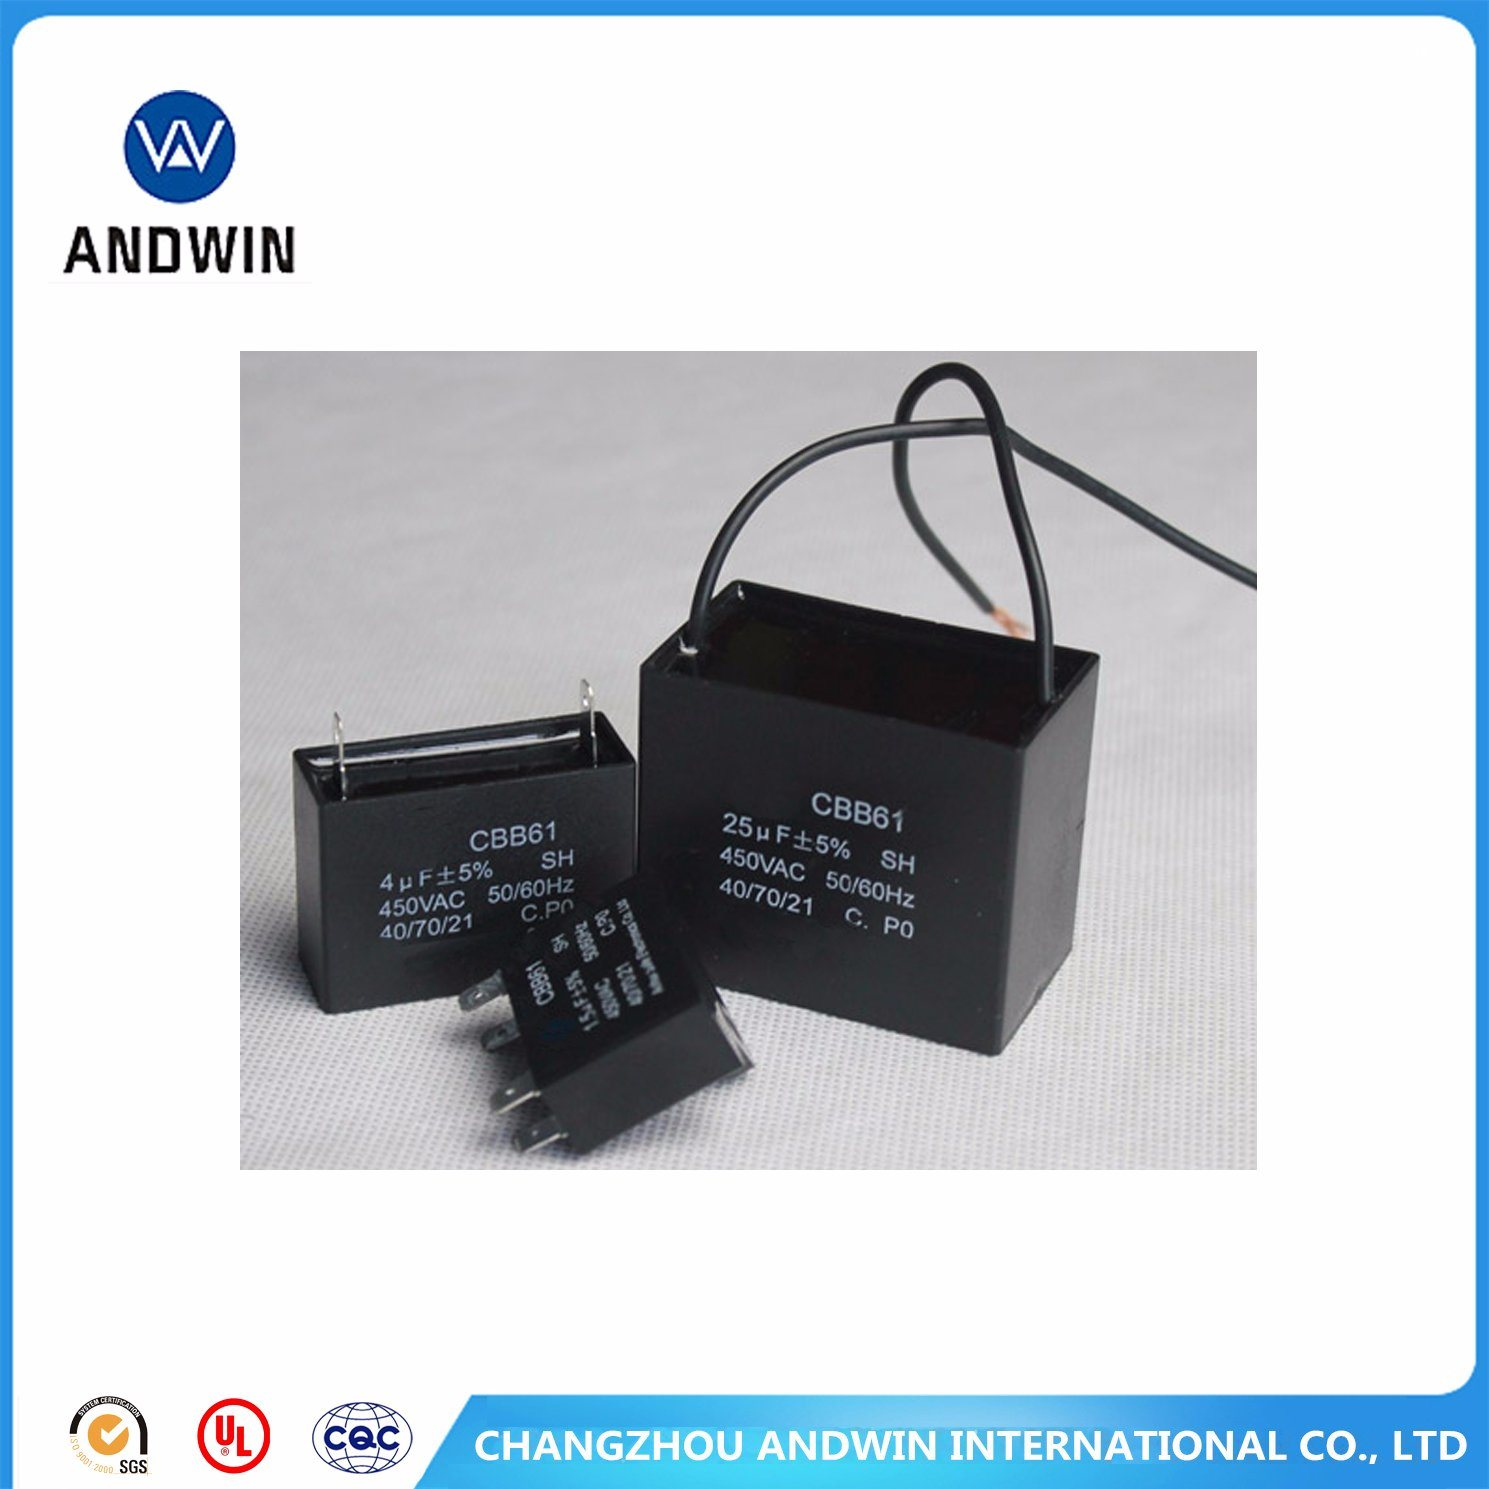 Cbb61 Run Capacitor for AC Fan Motors